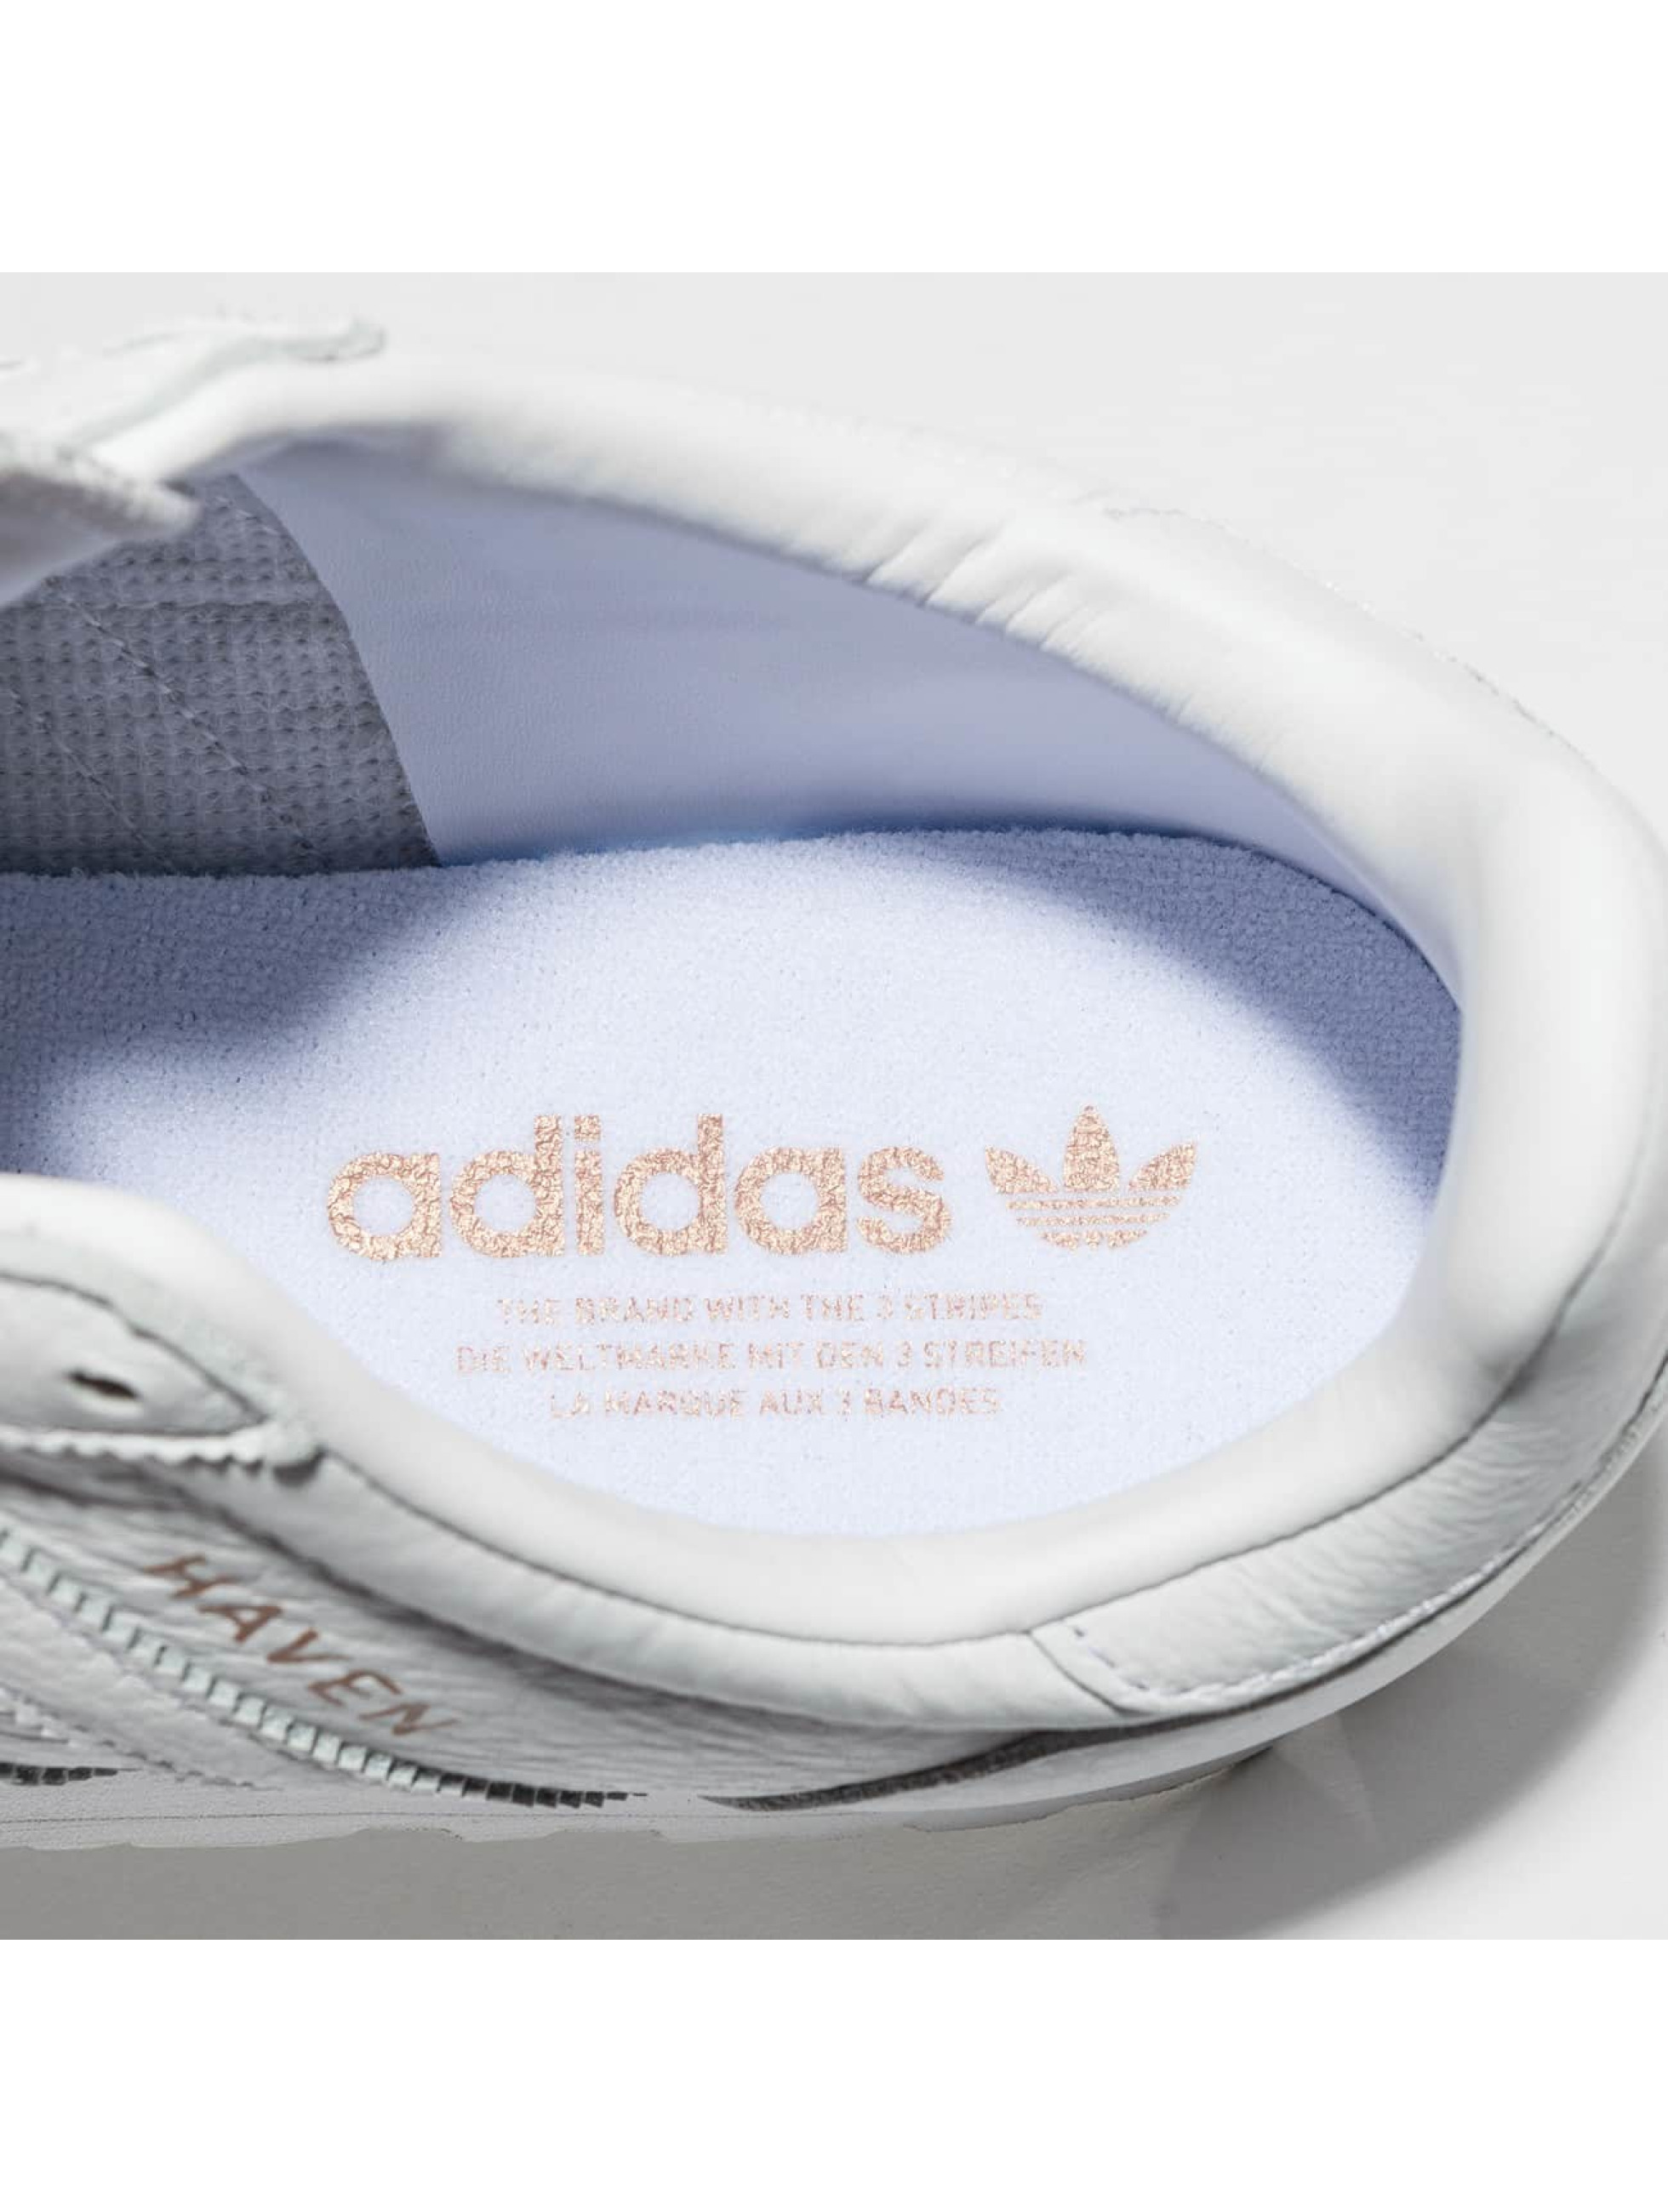 adidas originals Sneakers Haven white